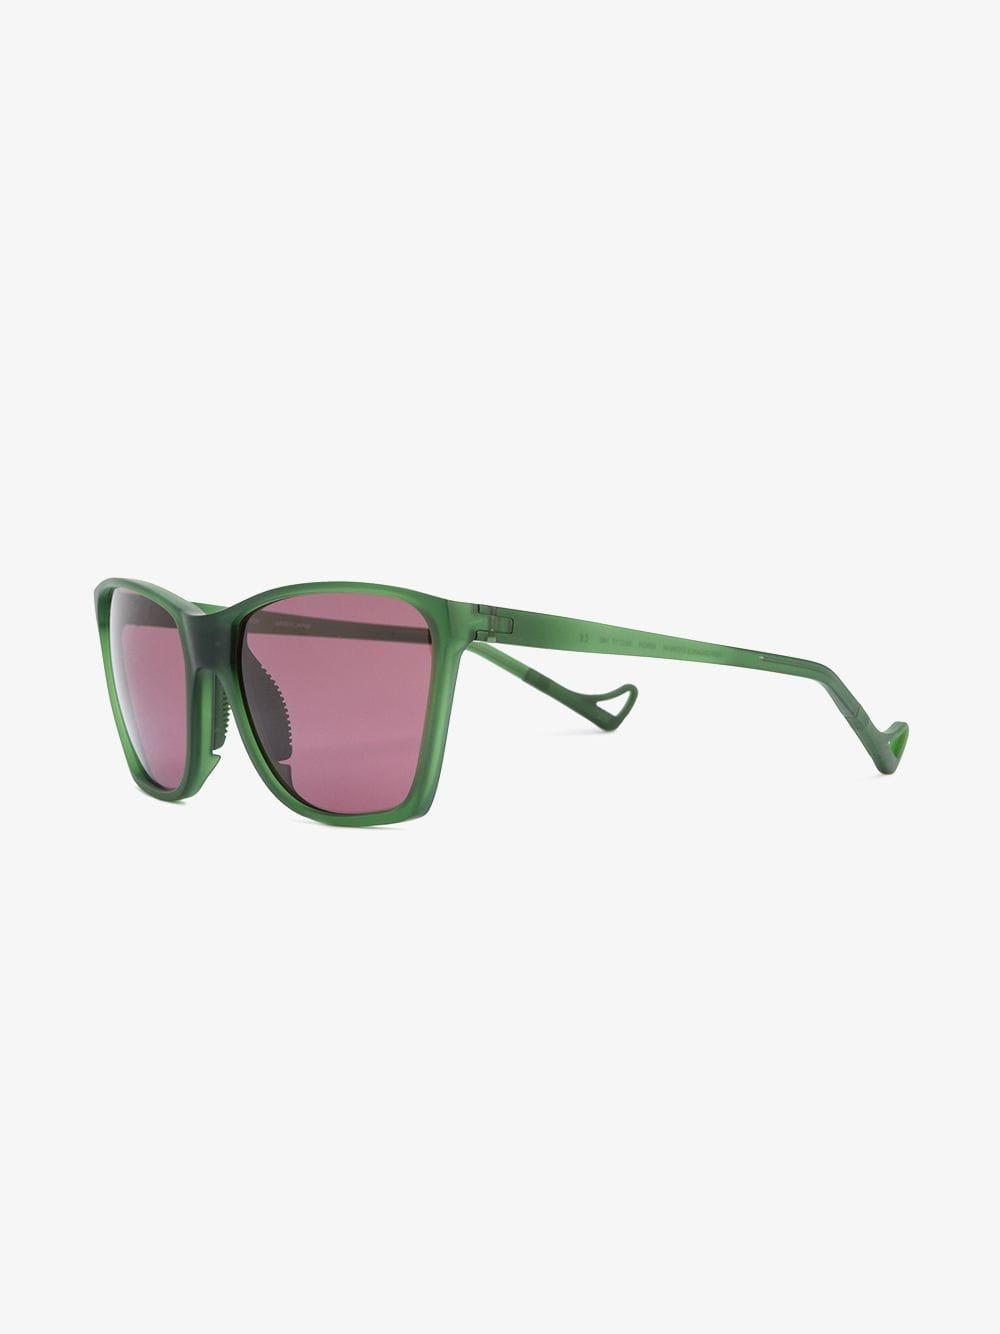 District Vision Rubber Green Keiichi District Sky G15 Sunglasses for Men